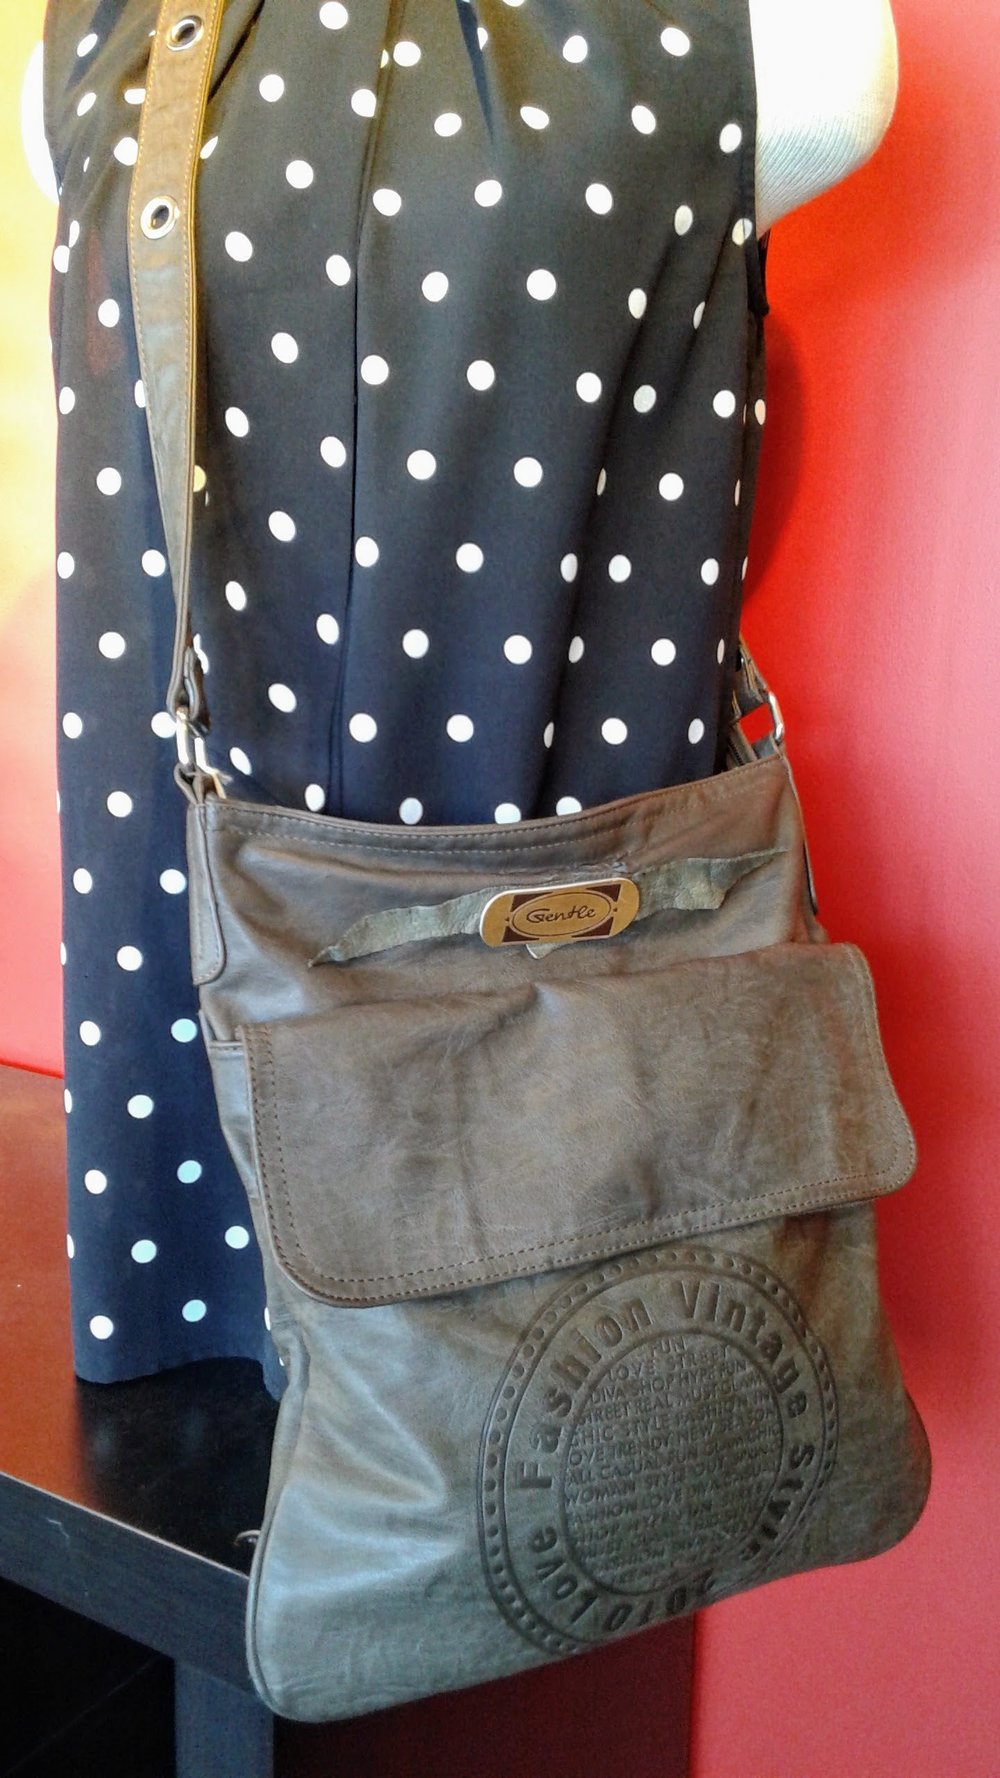 Gentle Vintage cross-body bag, $18